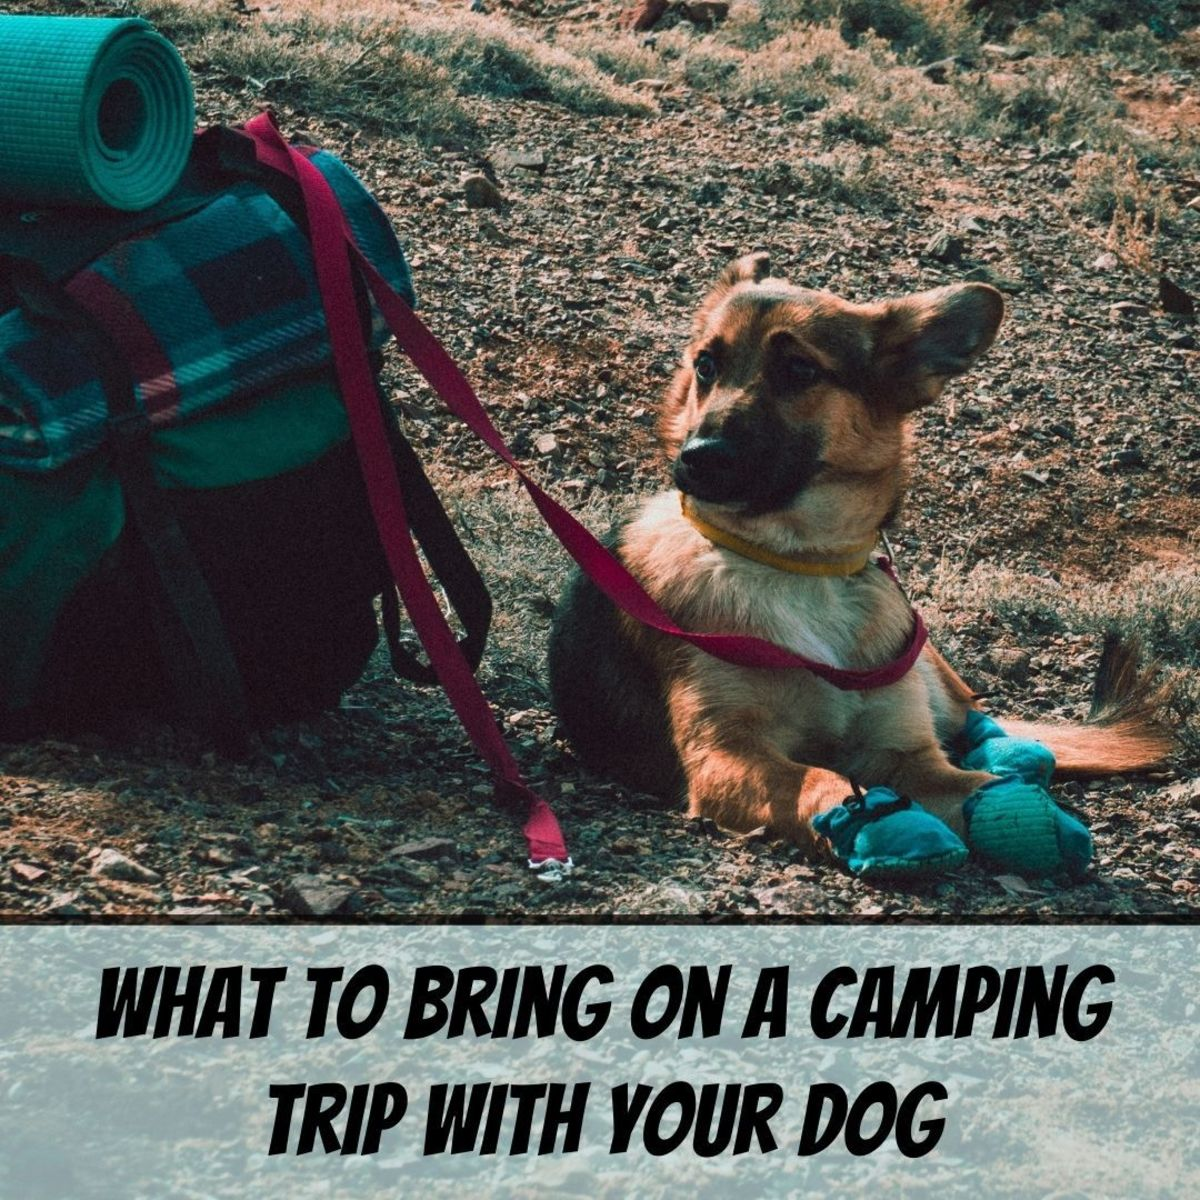 Dogs are ideal companions for camping trips—here's what to bring with you to be prepared and comfortable.